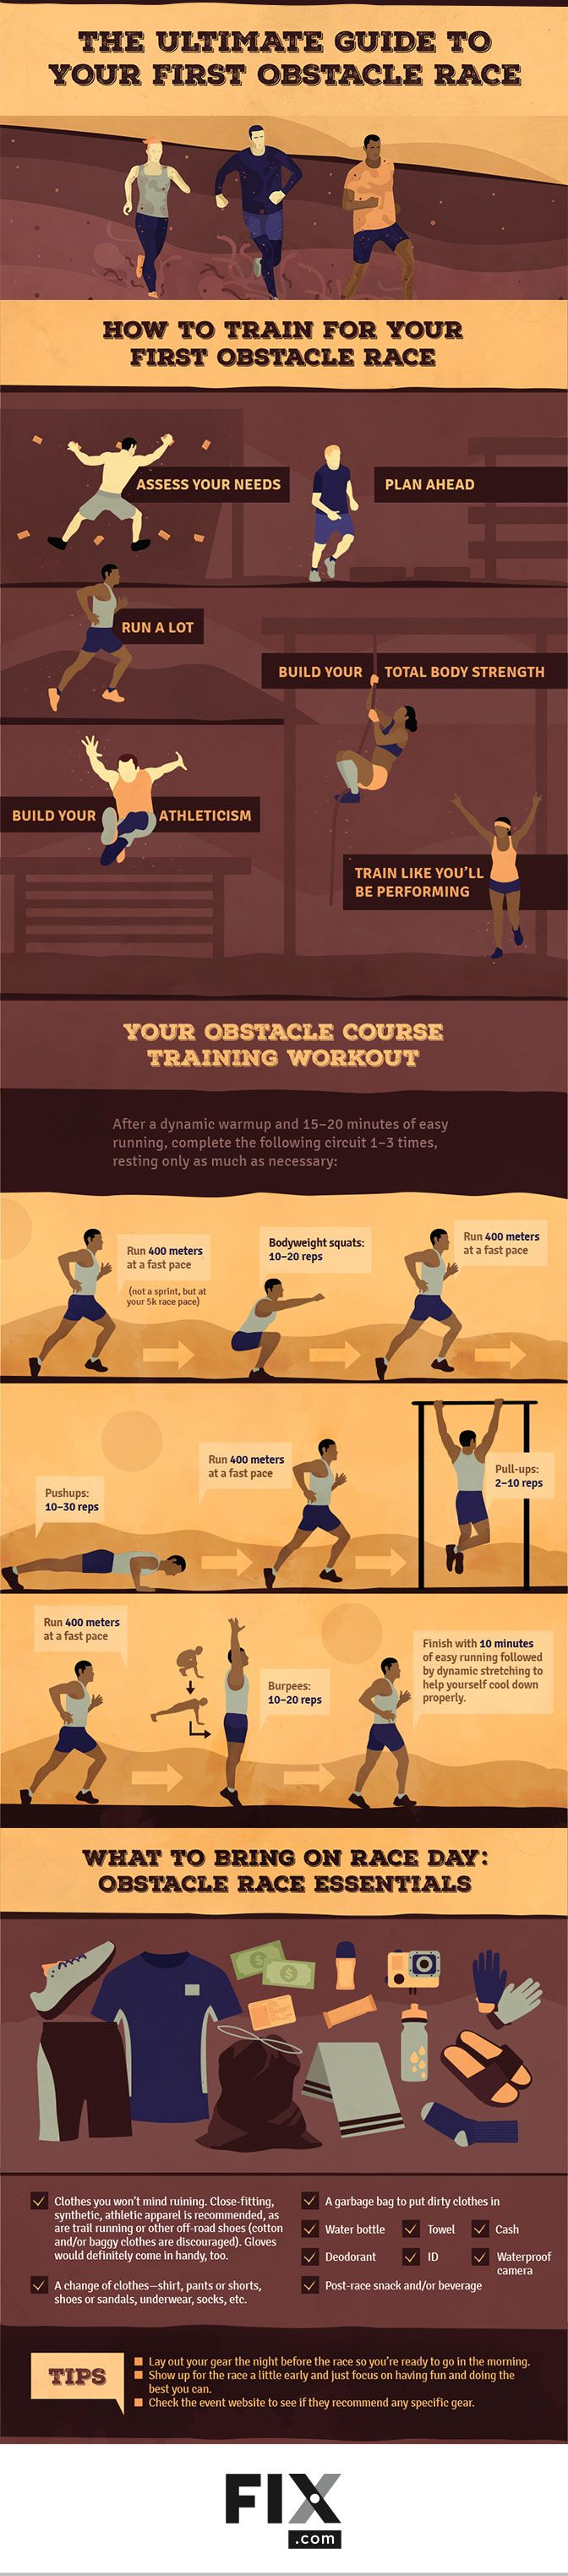 The Ultimate Guide to Your First Obstacle Race #infographic #Running #Sports